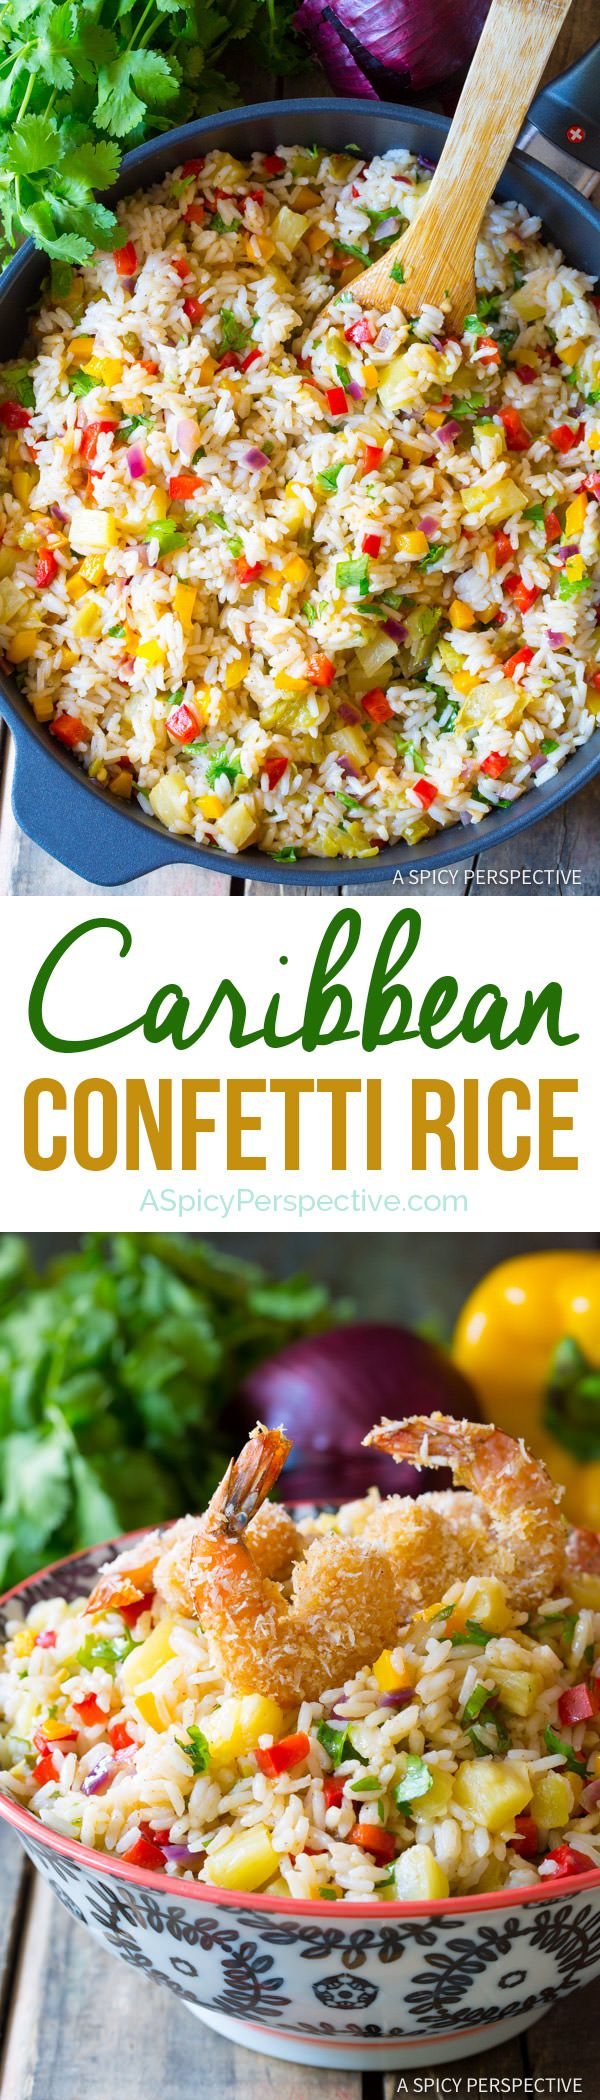 Fragrant Caribbean Confetti Rice Recipe | ASpicyPerspective.com